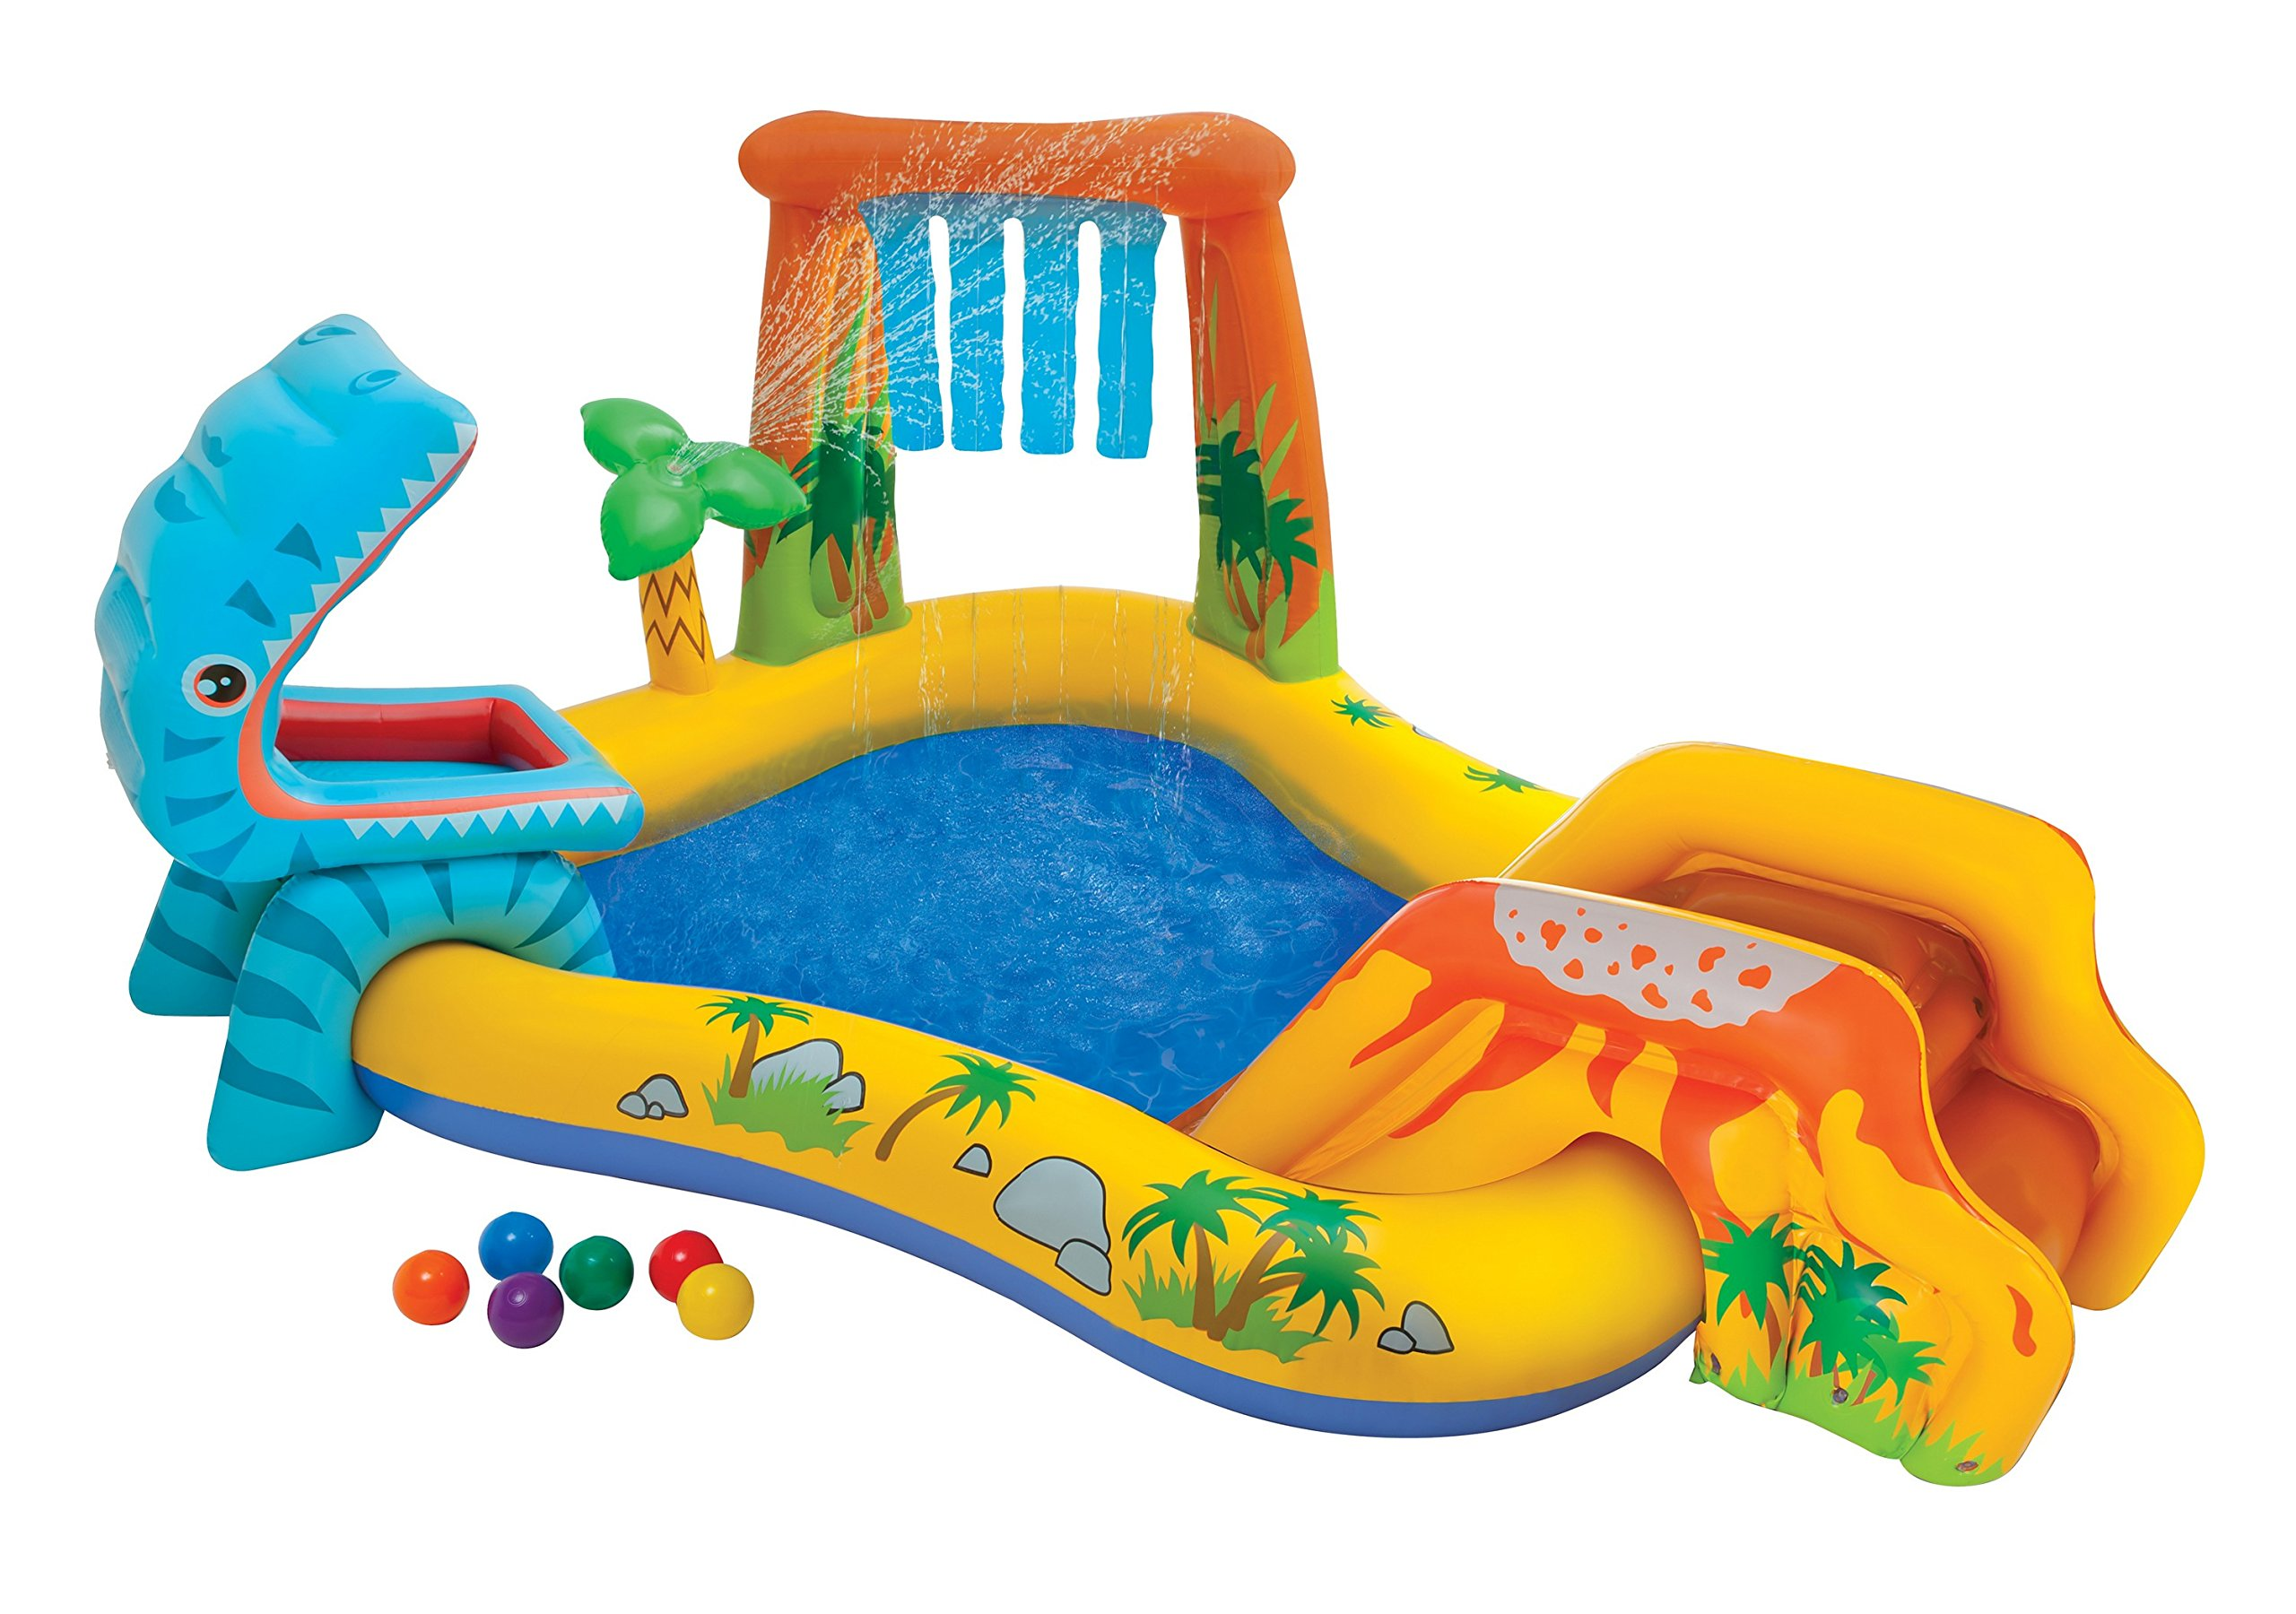 Intex Dinosaur Inflatable Play Center, 98in X 75in X 43in, for Ages 2+ by Intex